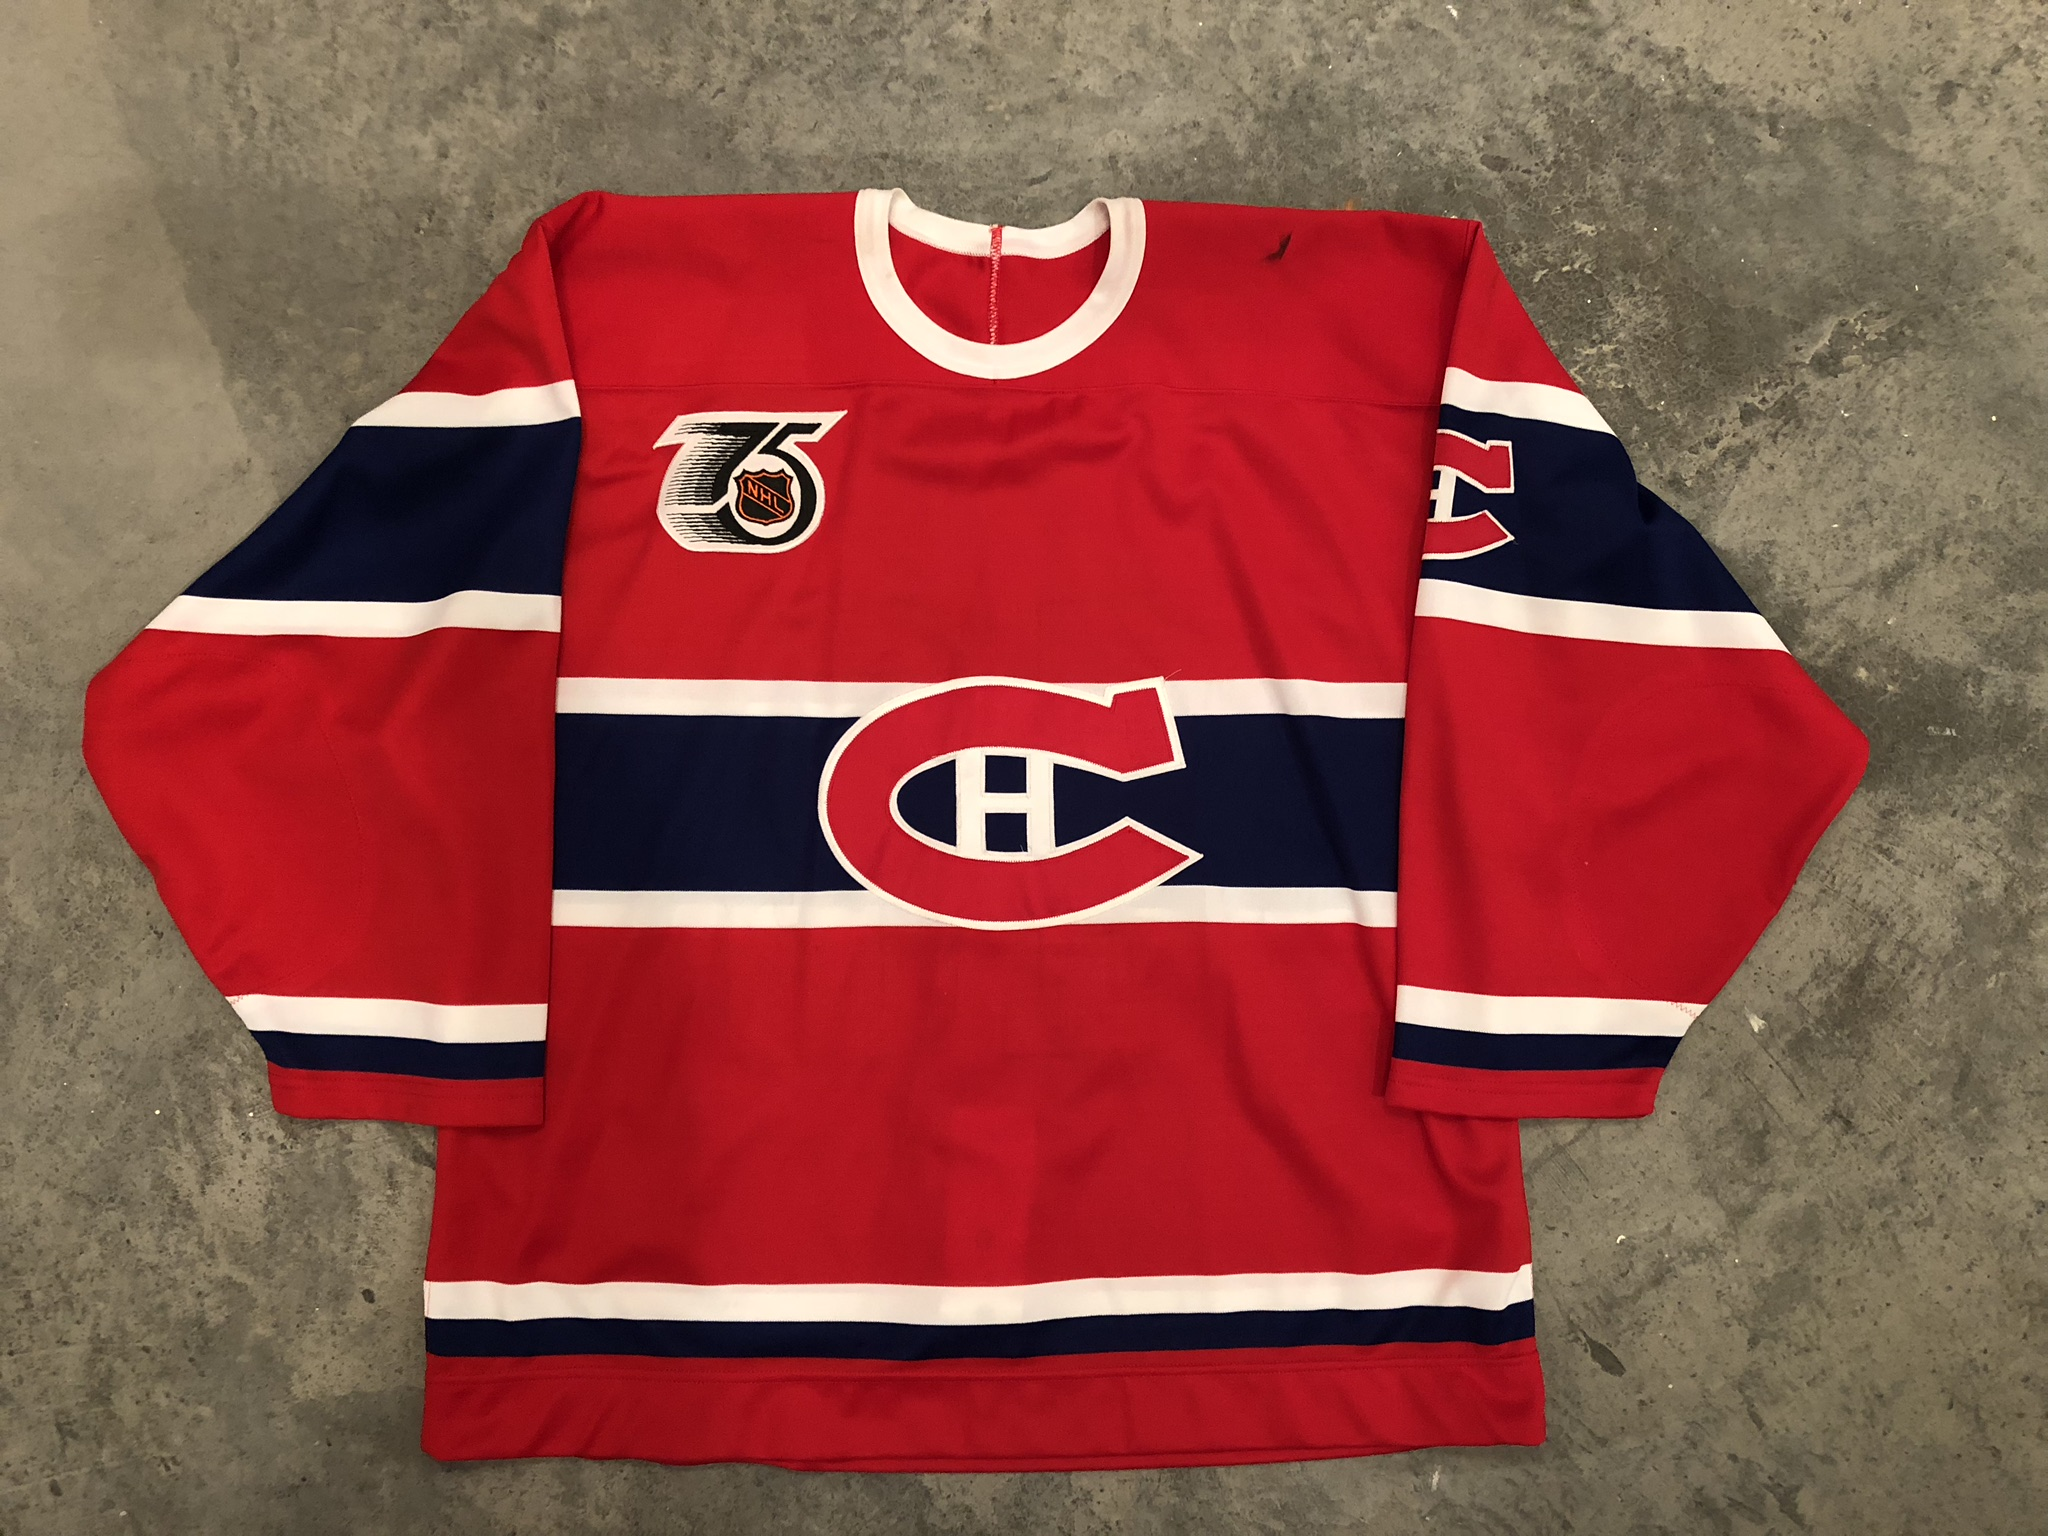 1991-92 Andre Racicot Montreal Canadiens TBTC Game Worn Jersey